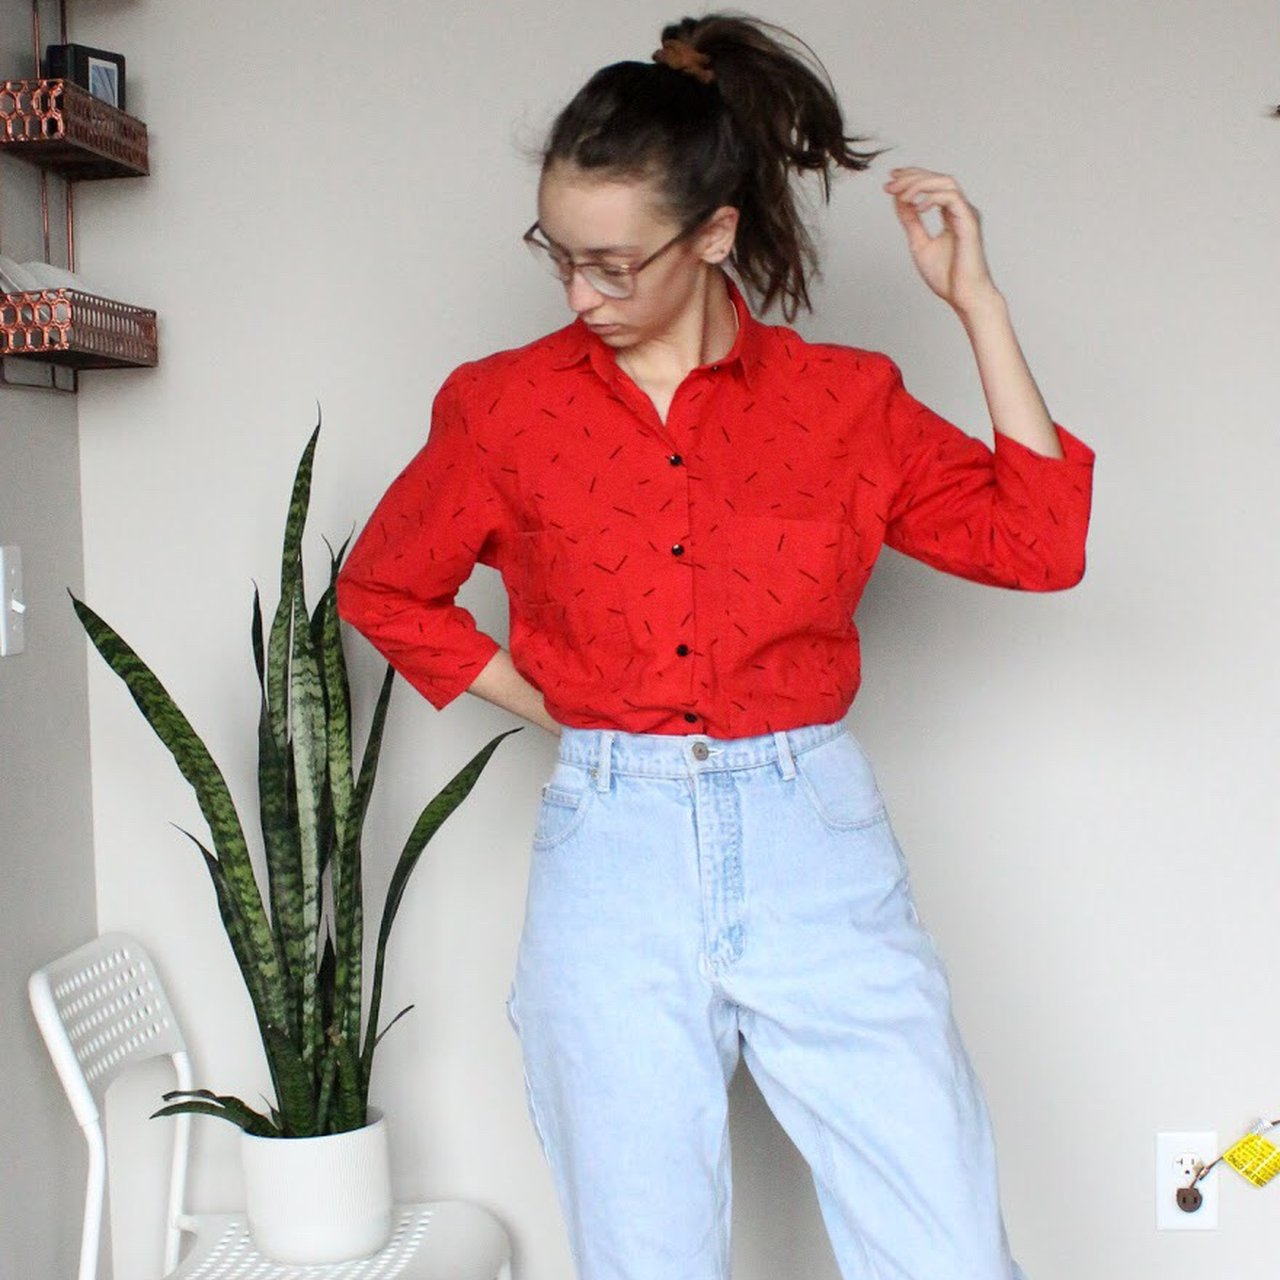 b404dab7 Vintage navy blue button down blouse. Very cute and in great - Depop